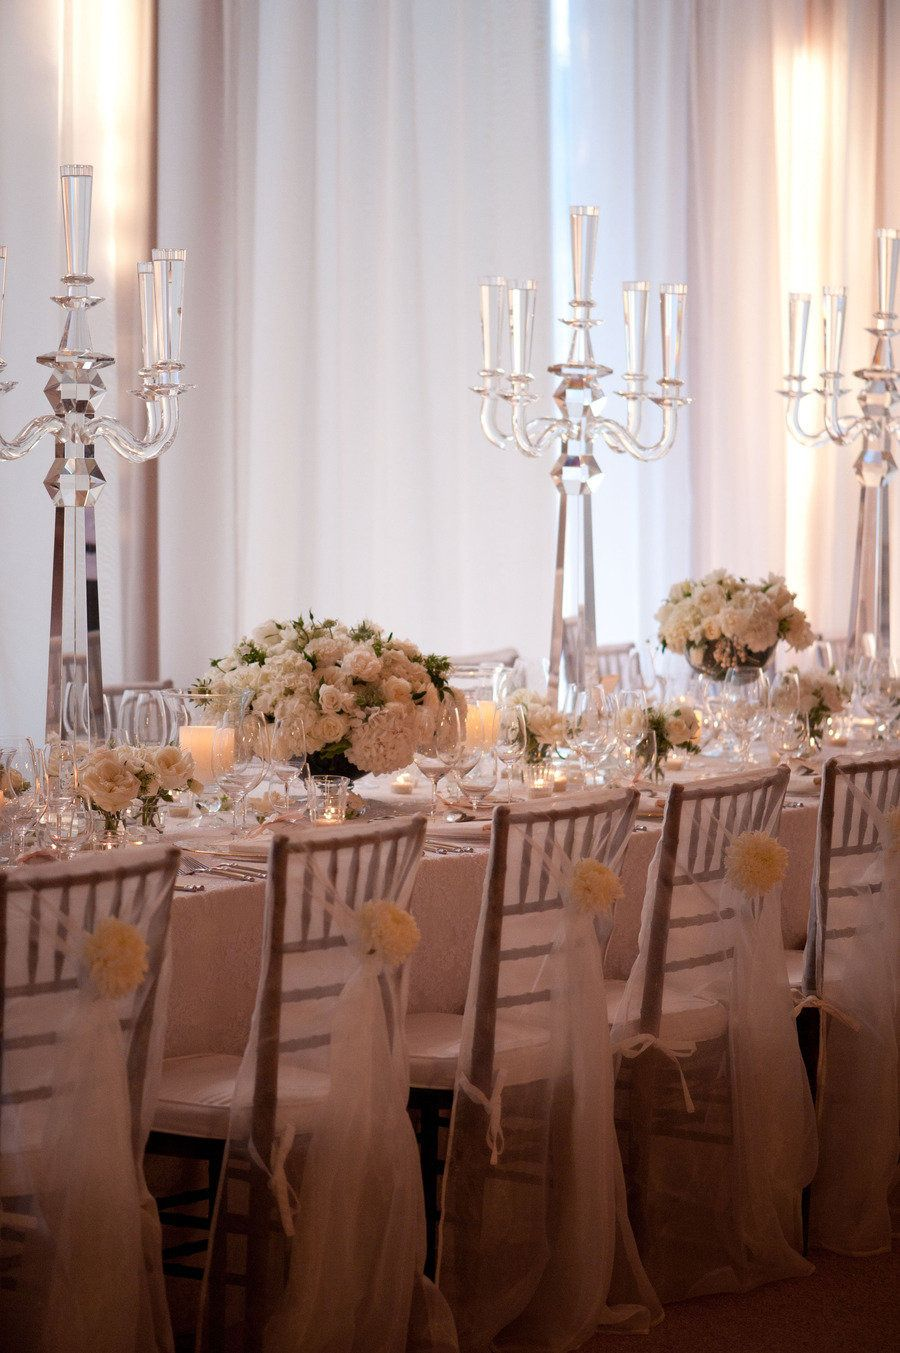 #candelabra  Photography: Kristen Loken Photography - kristenloken.com Photography: Sterling Tyler Photography - sterlingtyler.com Event Design + Planning: CUSTOM EVENT GROUP - customeventgroup.com Floral Design: Kathy Hoffman Flowers - kathyhoffmanflowers.com  Read More: http://www.stylemepretty.com/2012/04/30/napa-valley-wedding-at-black-swan-lake-by-custom-event-group/